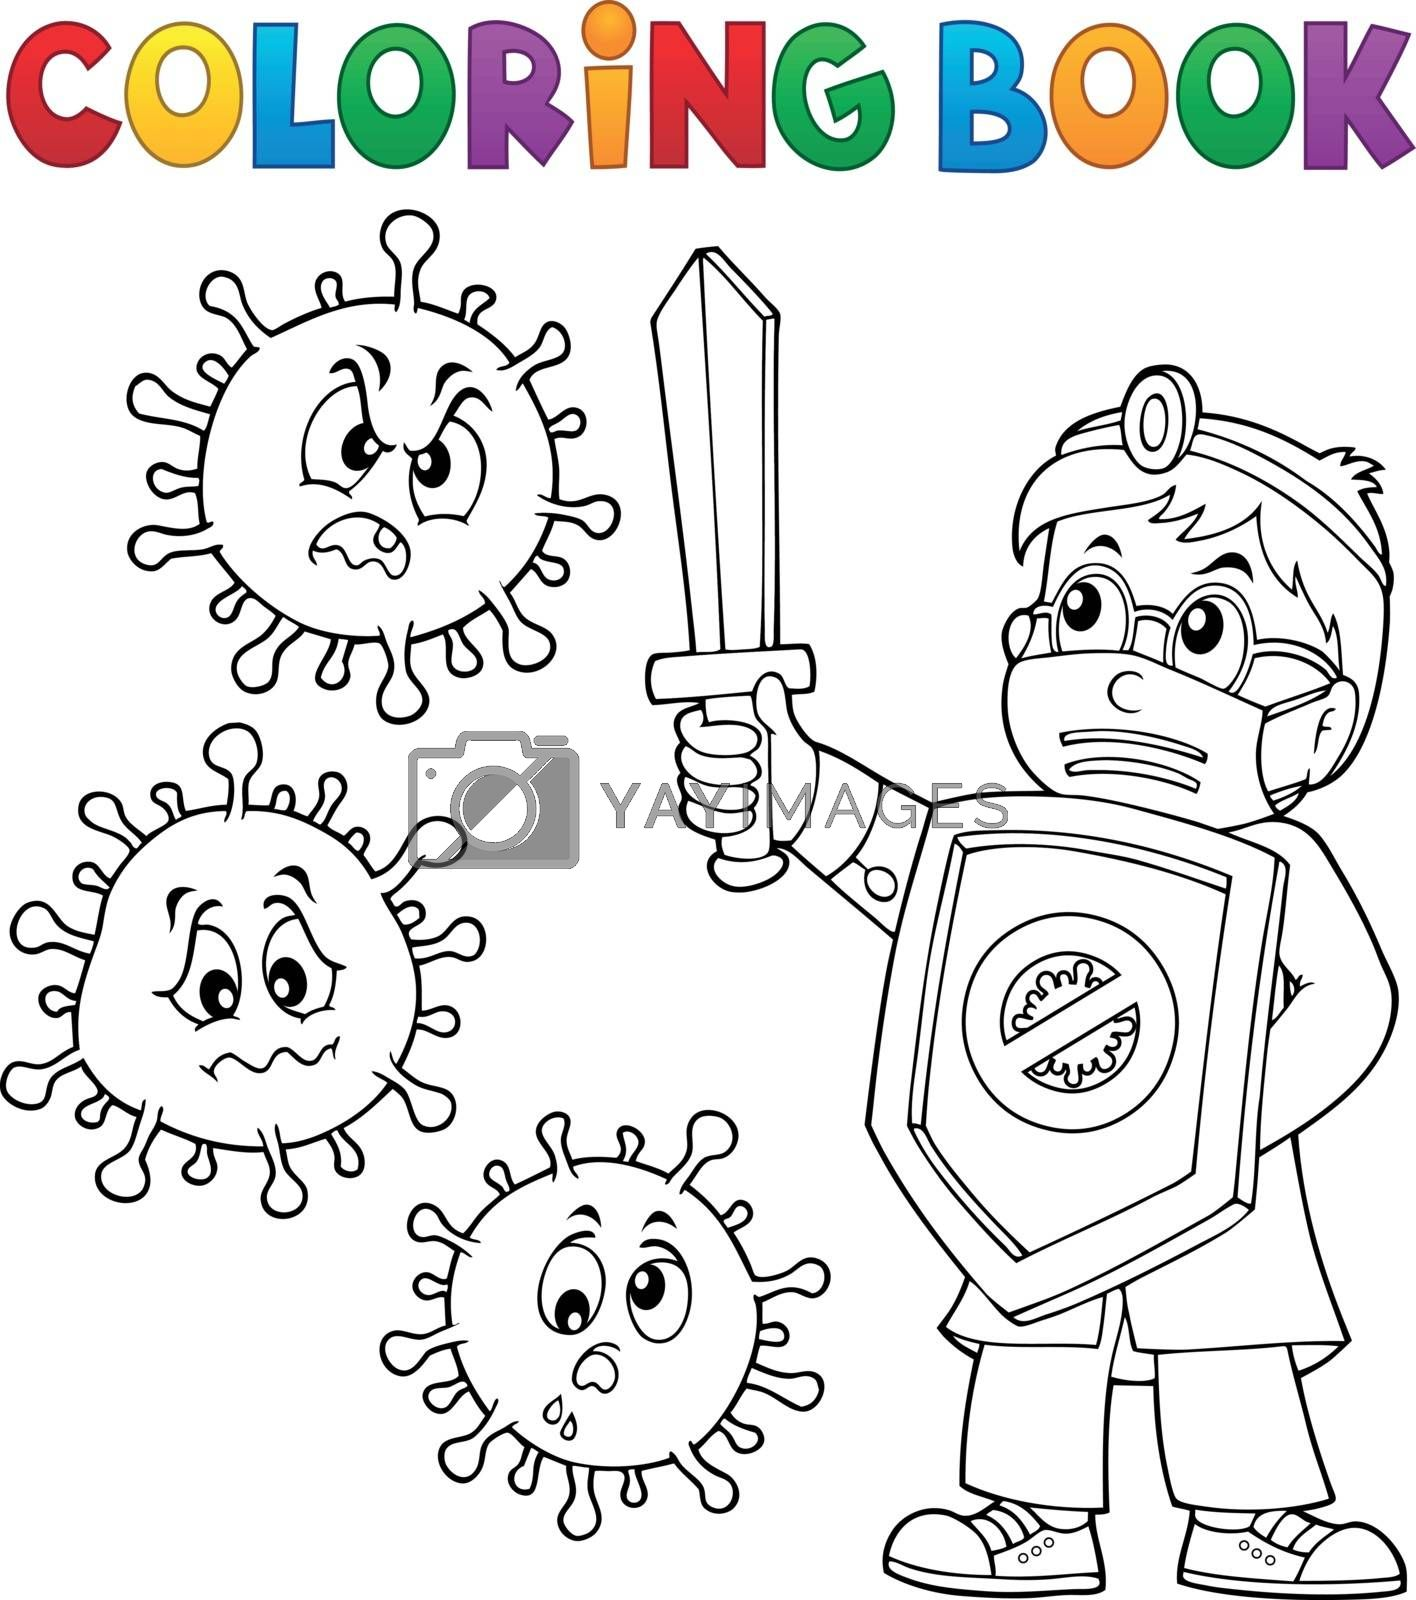 Coloring book doctor fighting virus 1 - eps10 vector illustration.